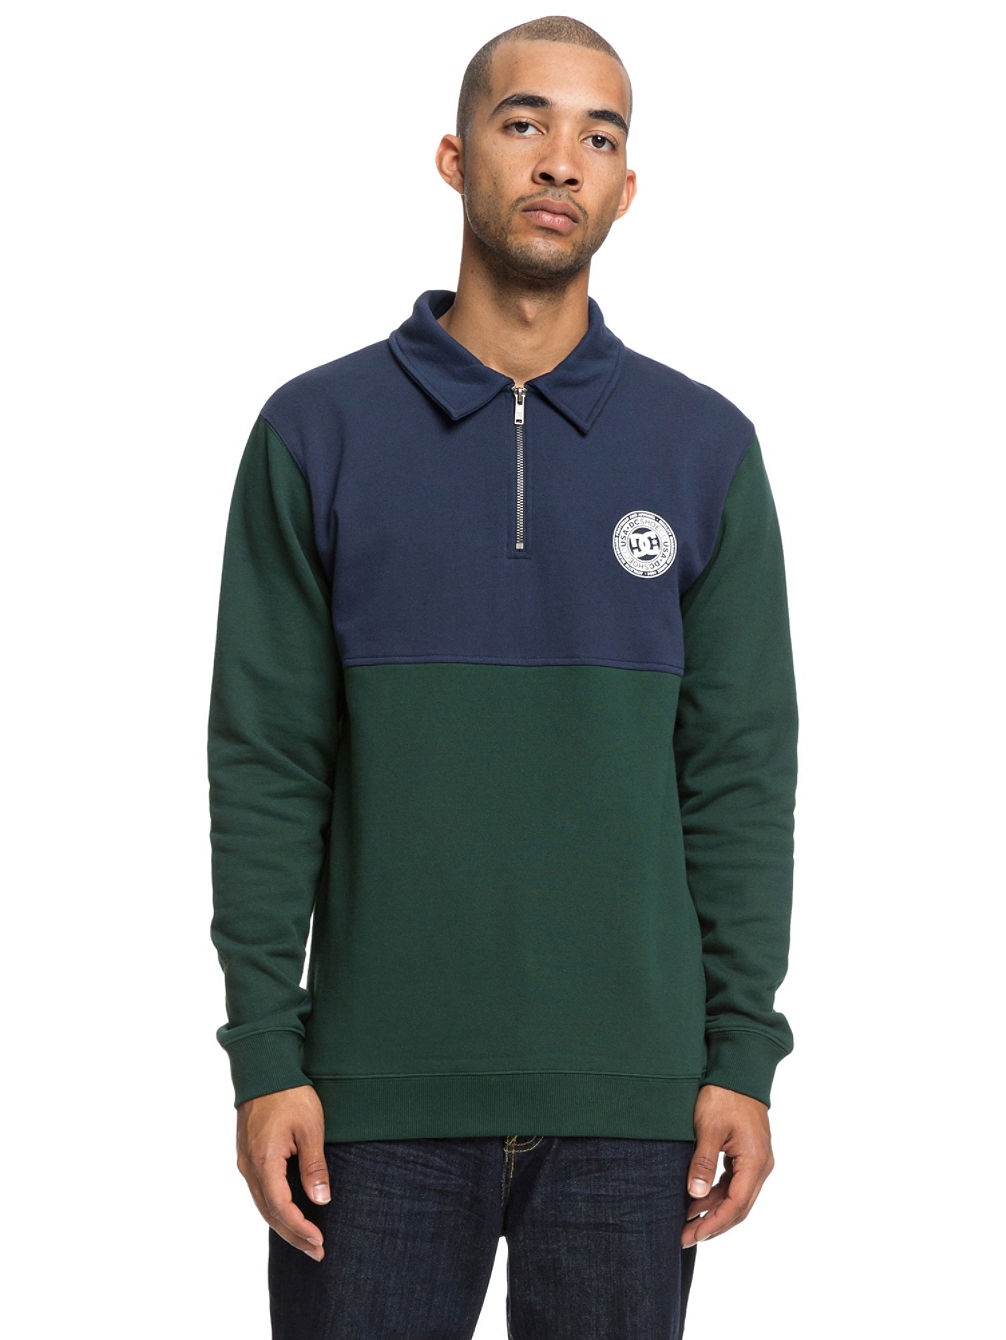 Dellwood Polo Sweater